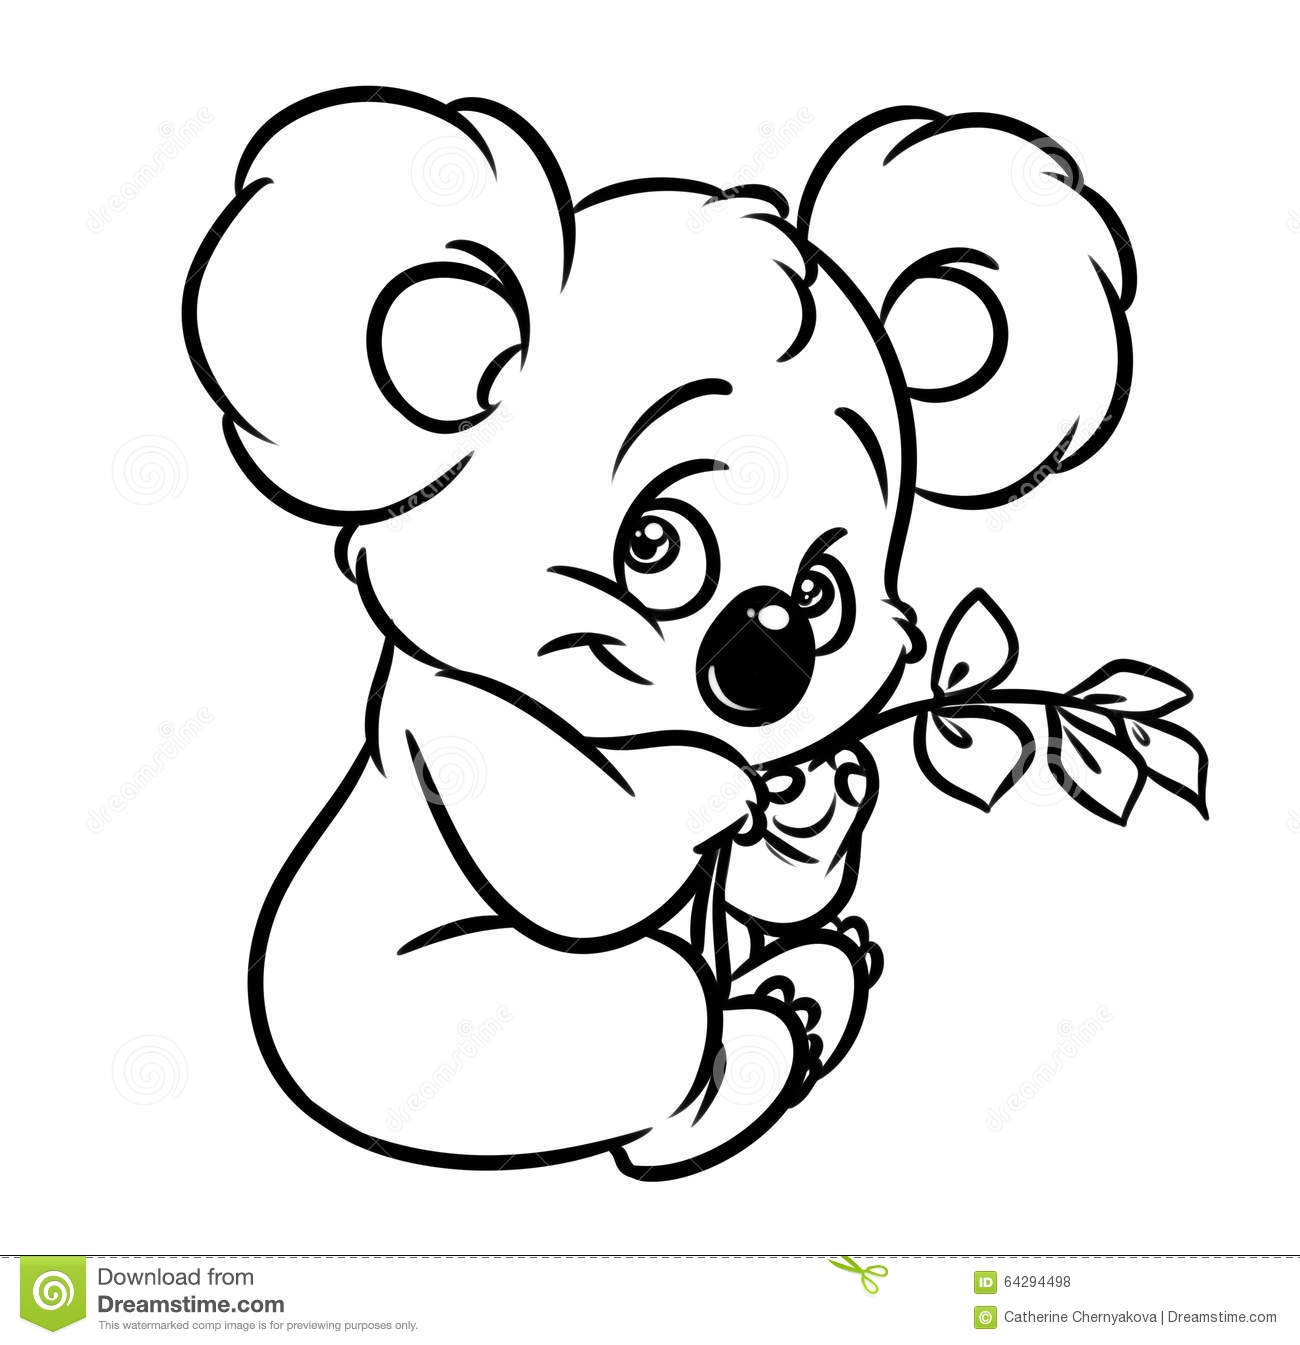 Line Drawing Koala : Koala eucalyptus leaves coloring page stock illustration